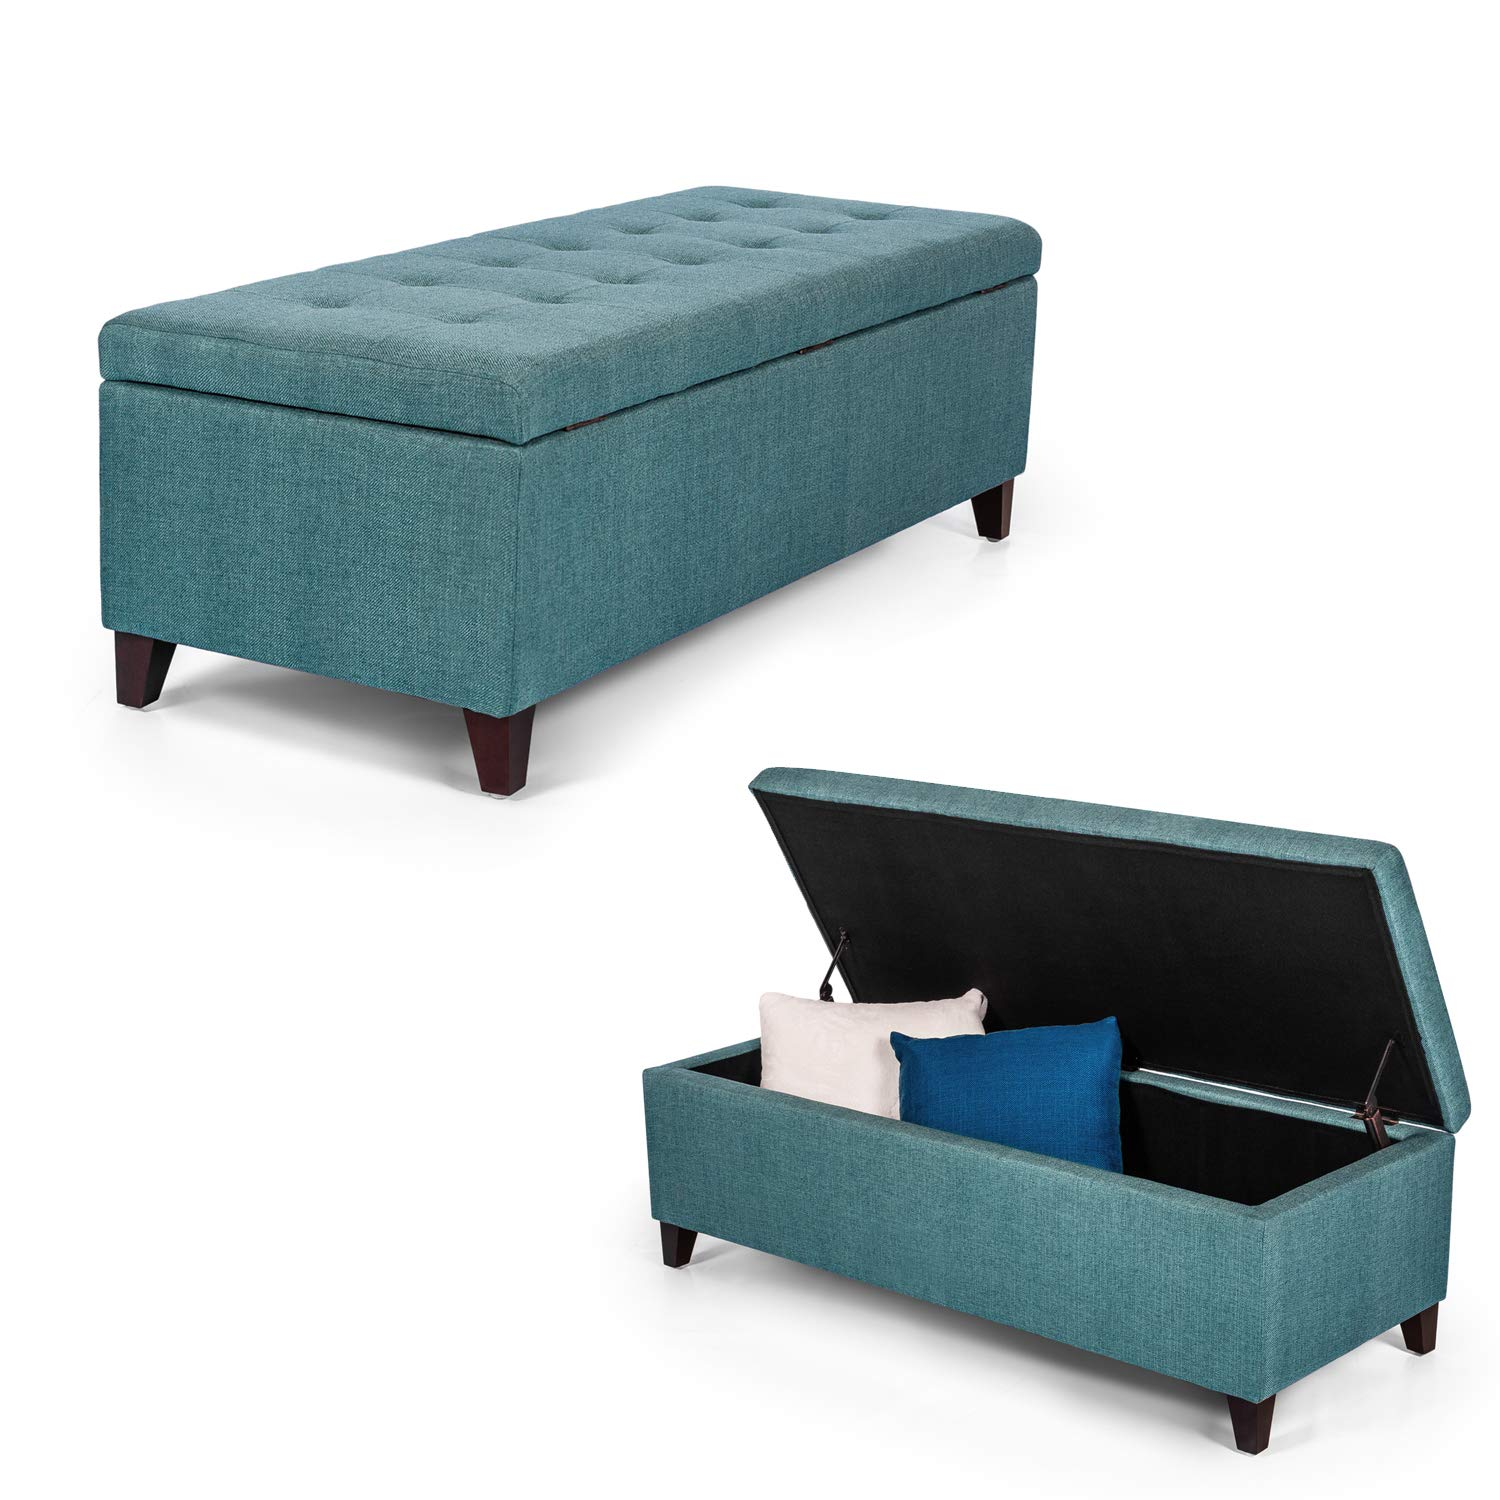 Decent Home Ottoman Bench with Storage - Rectangular Couch/Sofa- 48 Inches Long (Blue) (cadetblue) by Decent Home